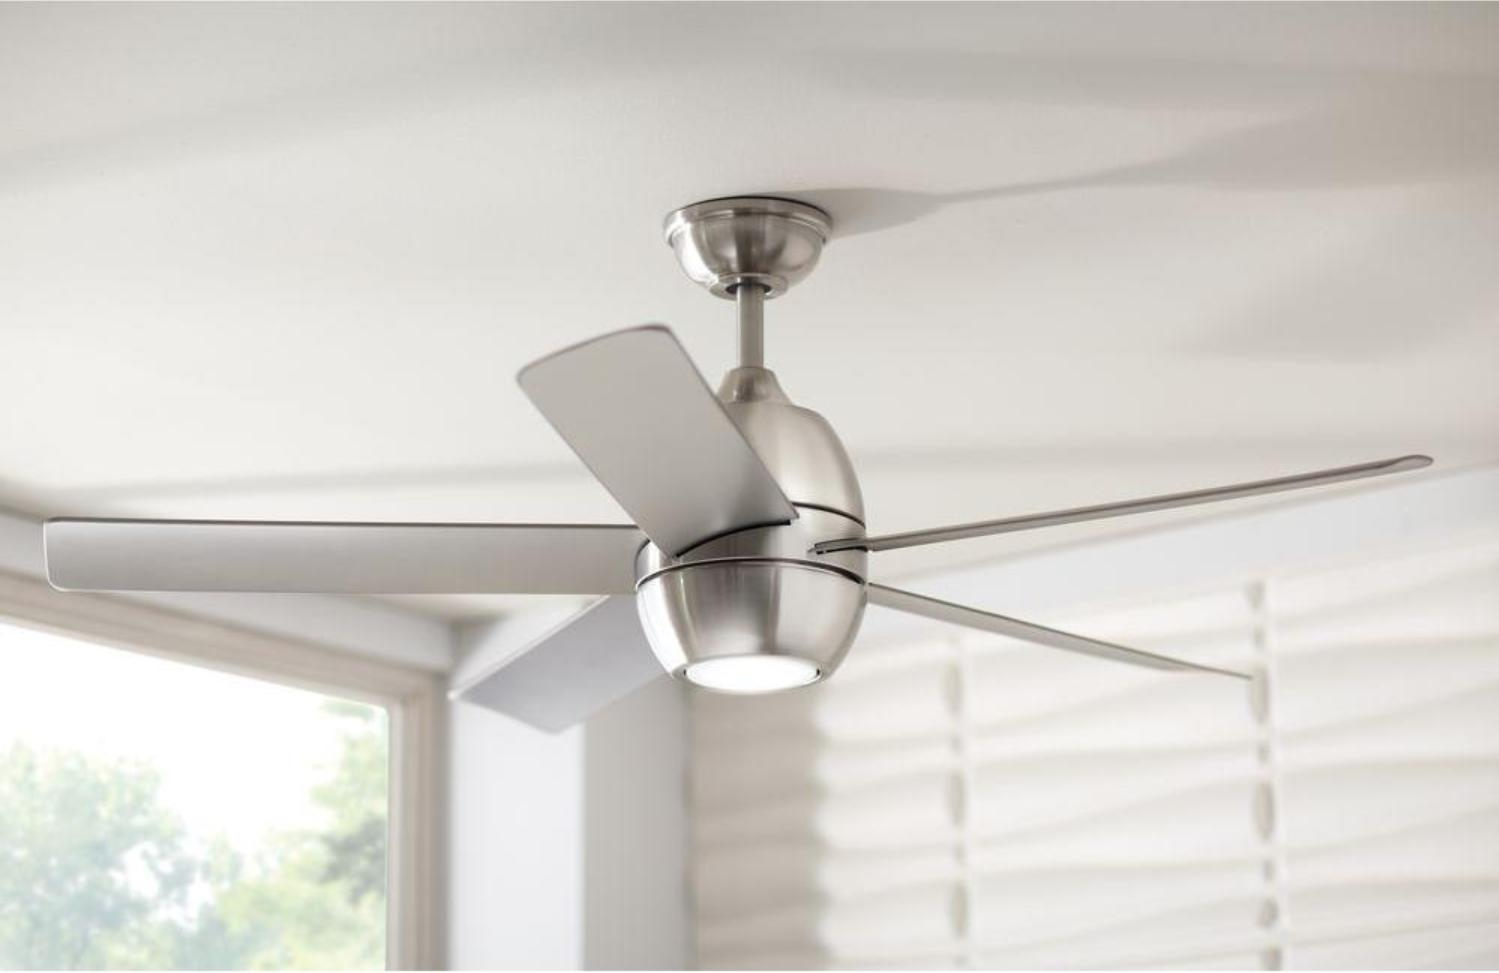 Home Decorators Collection Greco III 52 in. LED Brushed Nick